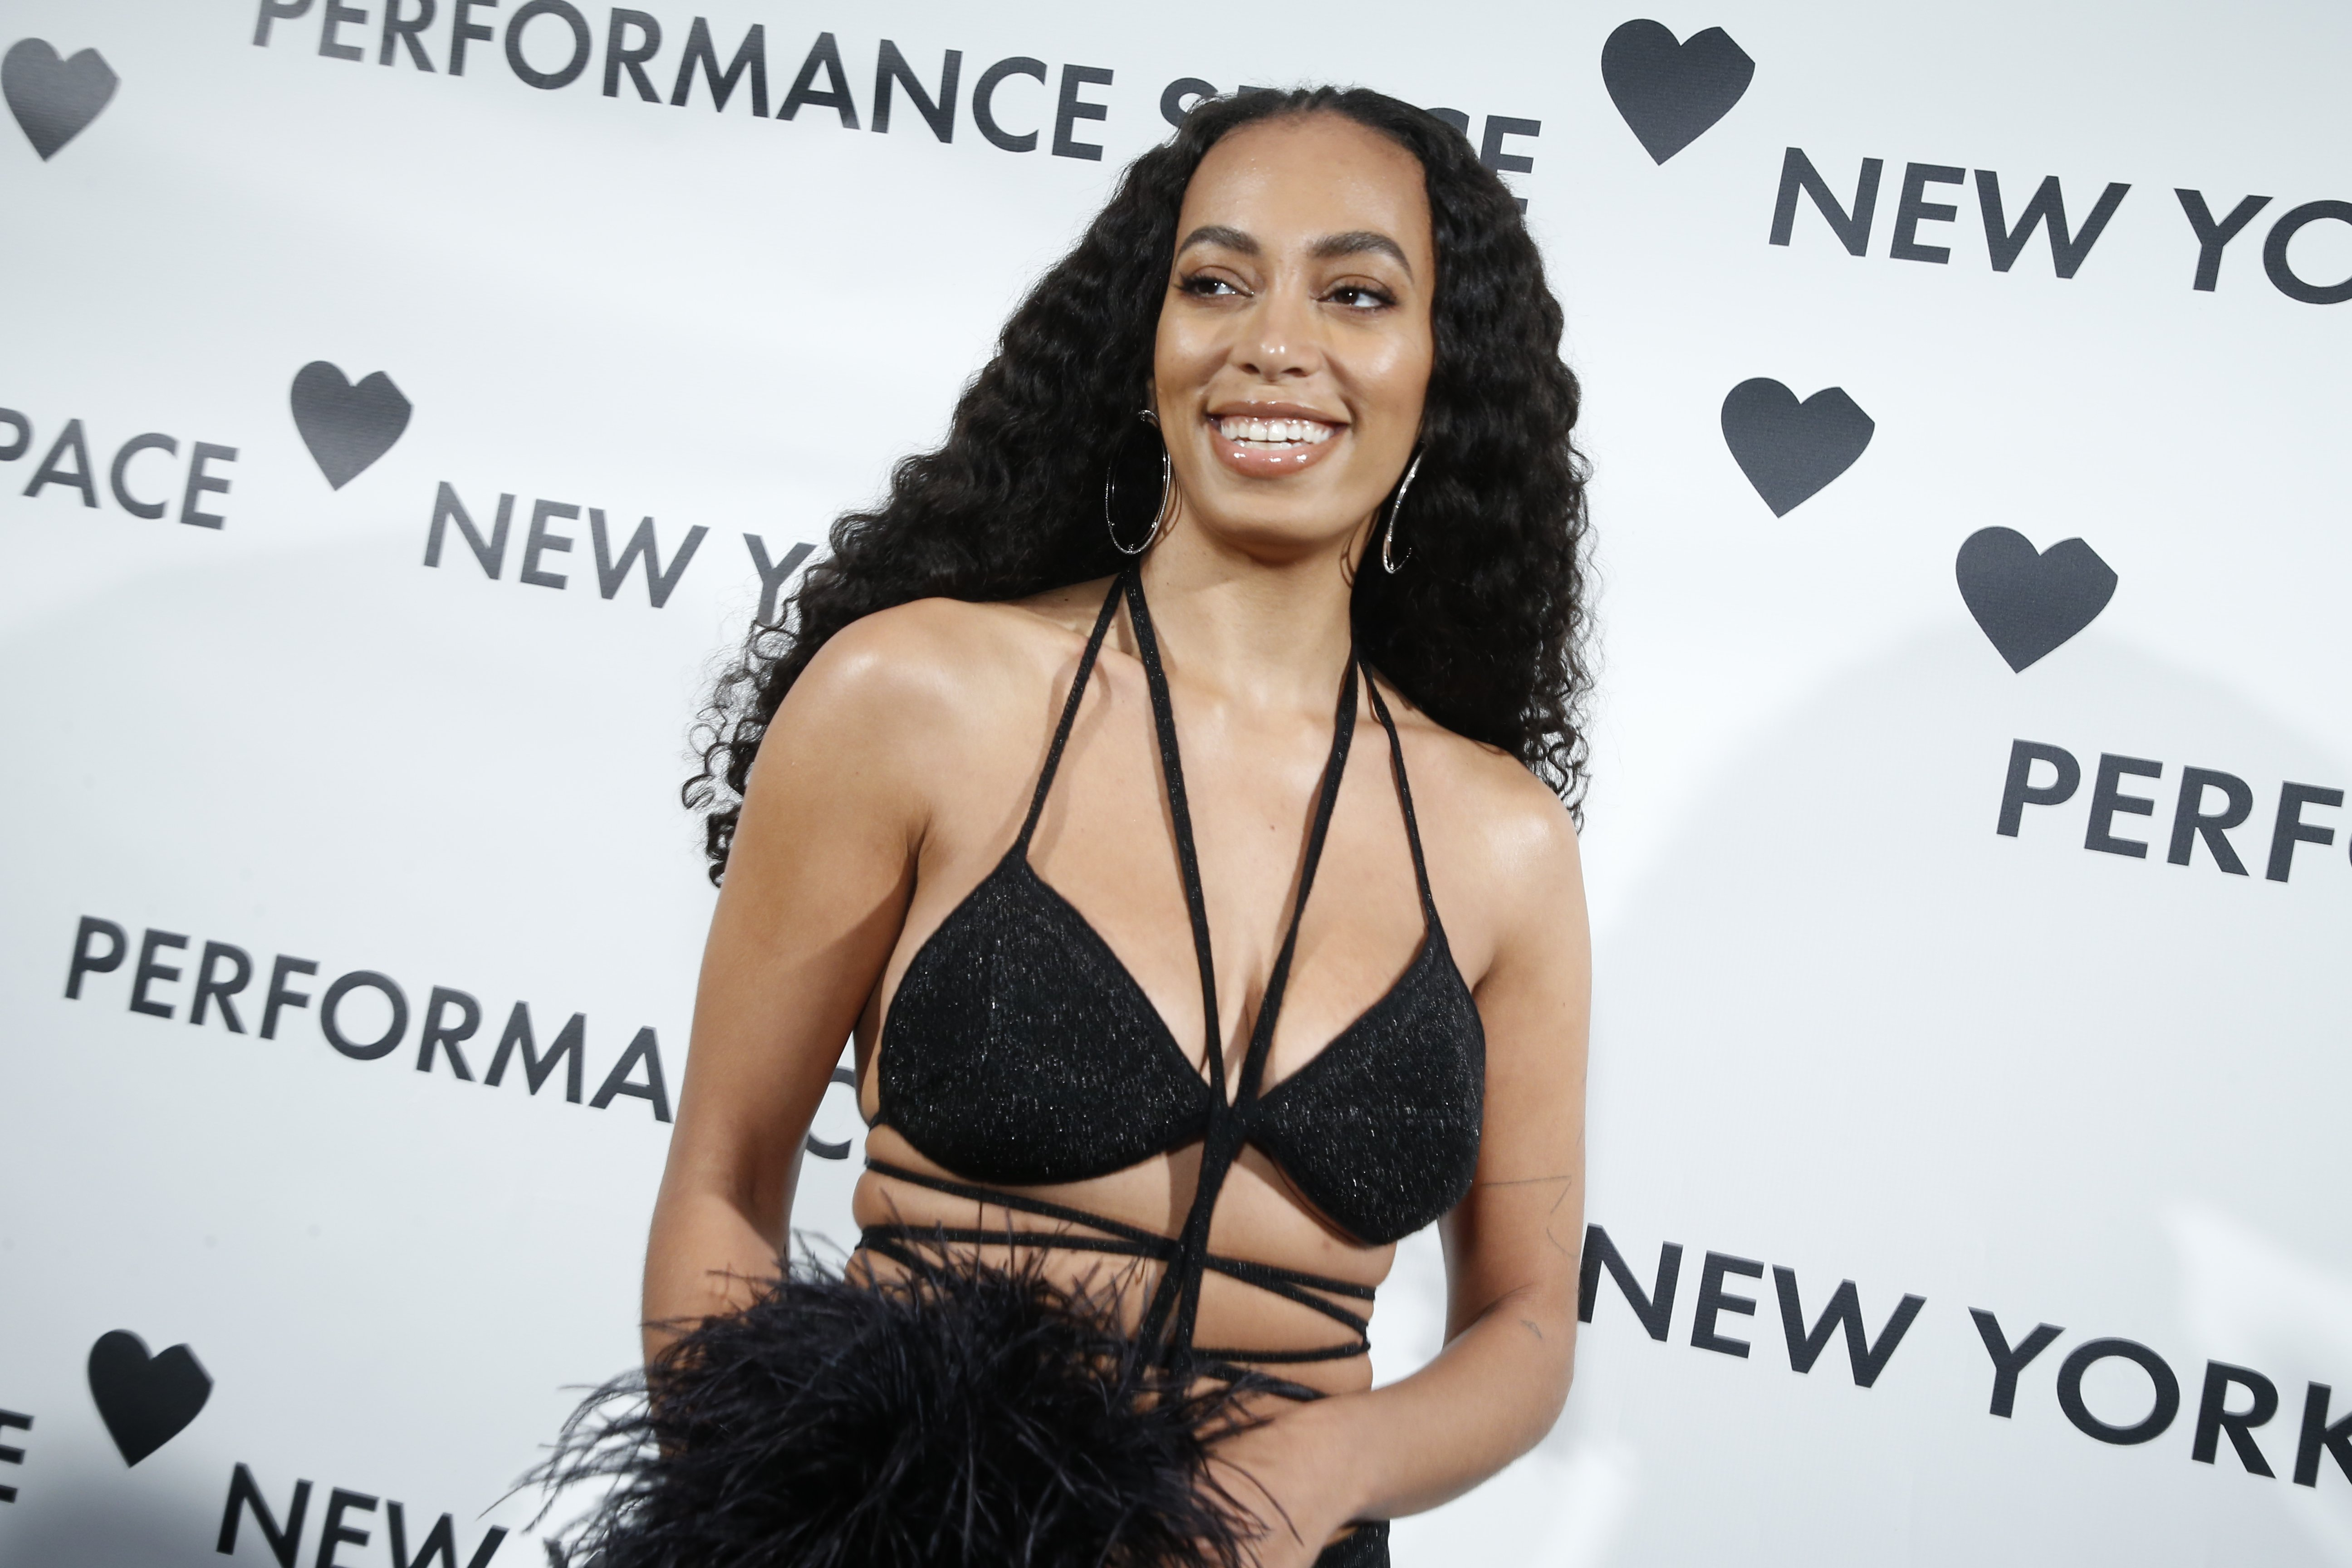 Solange Knowles at New York's Spring Gala on May 04, 2019 in New York City.  Source: Getty Images